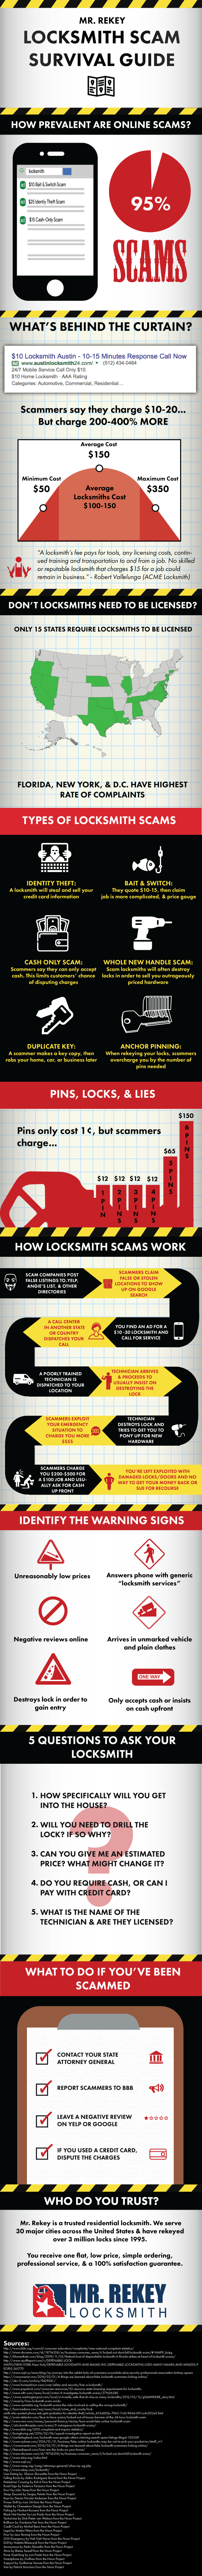 LocksmithScamInfographic